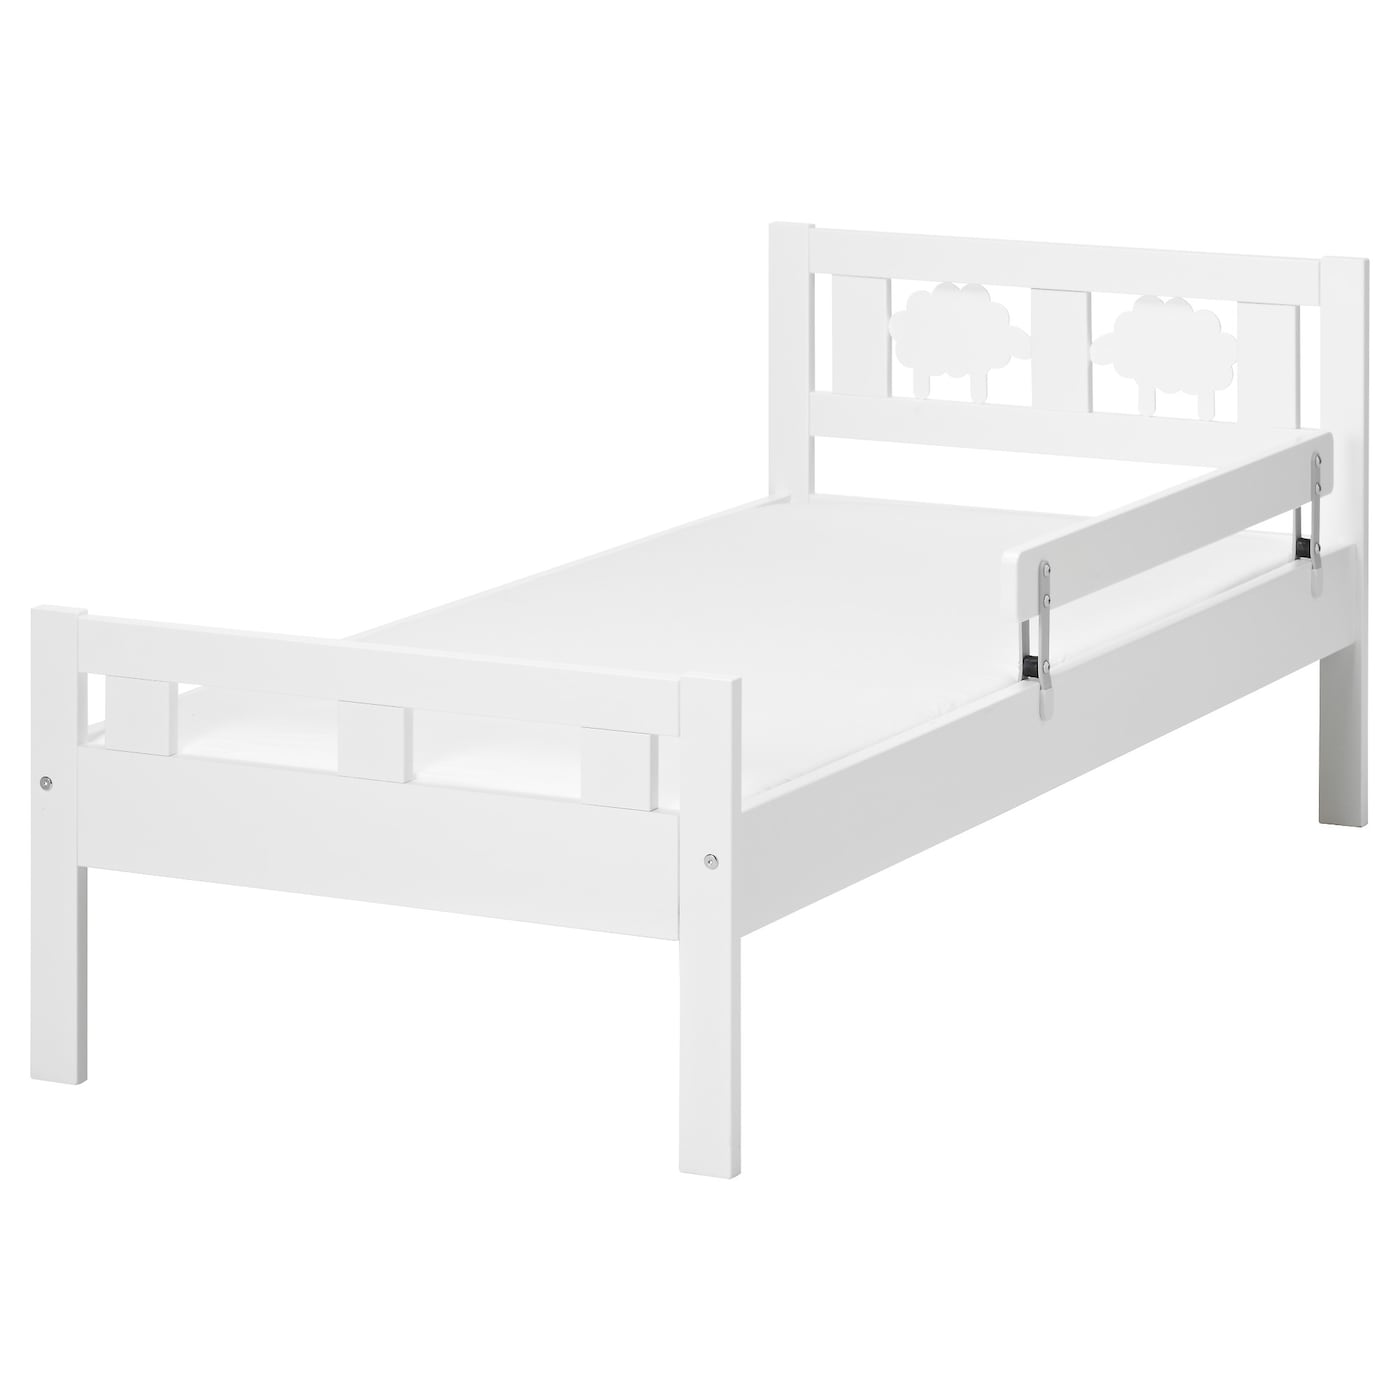 Kritter Bed Frame With Slatted Bed Base White 70x160 Cm Ikea